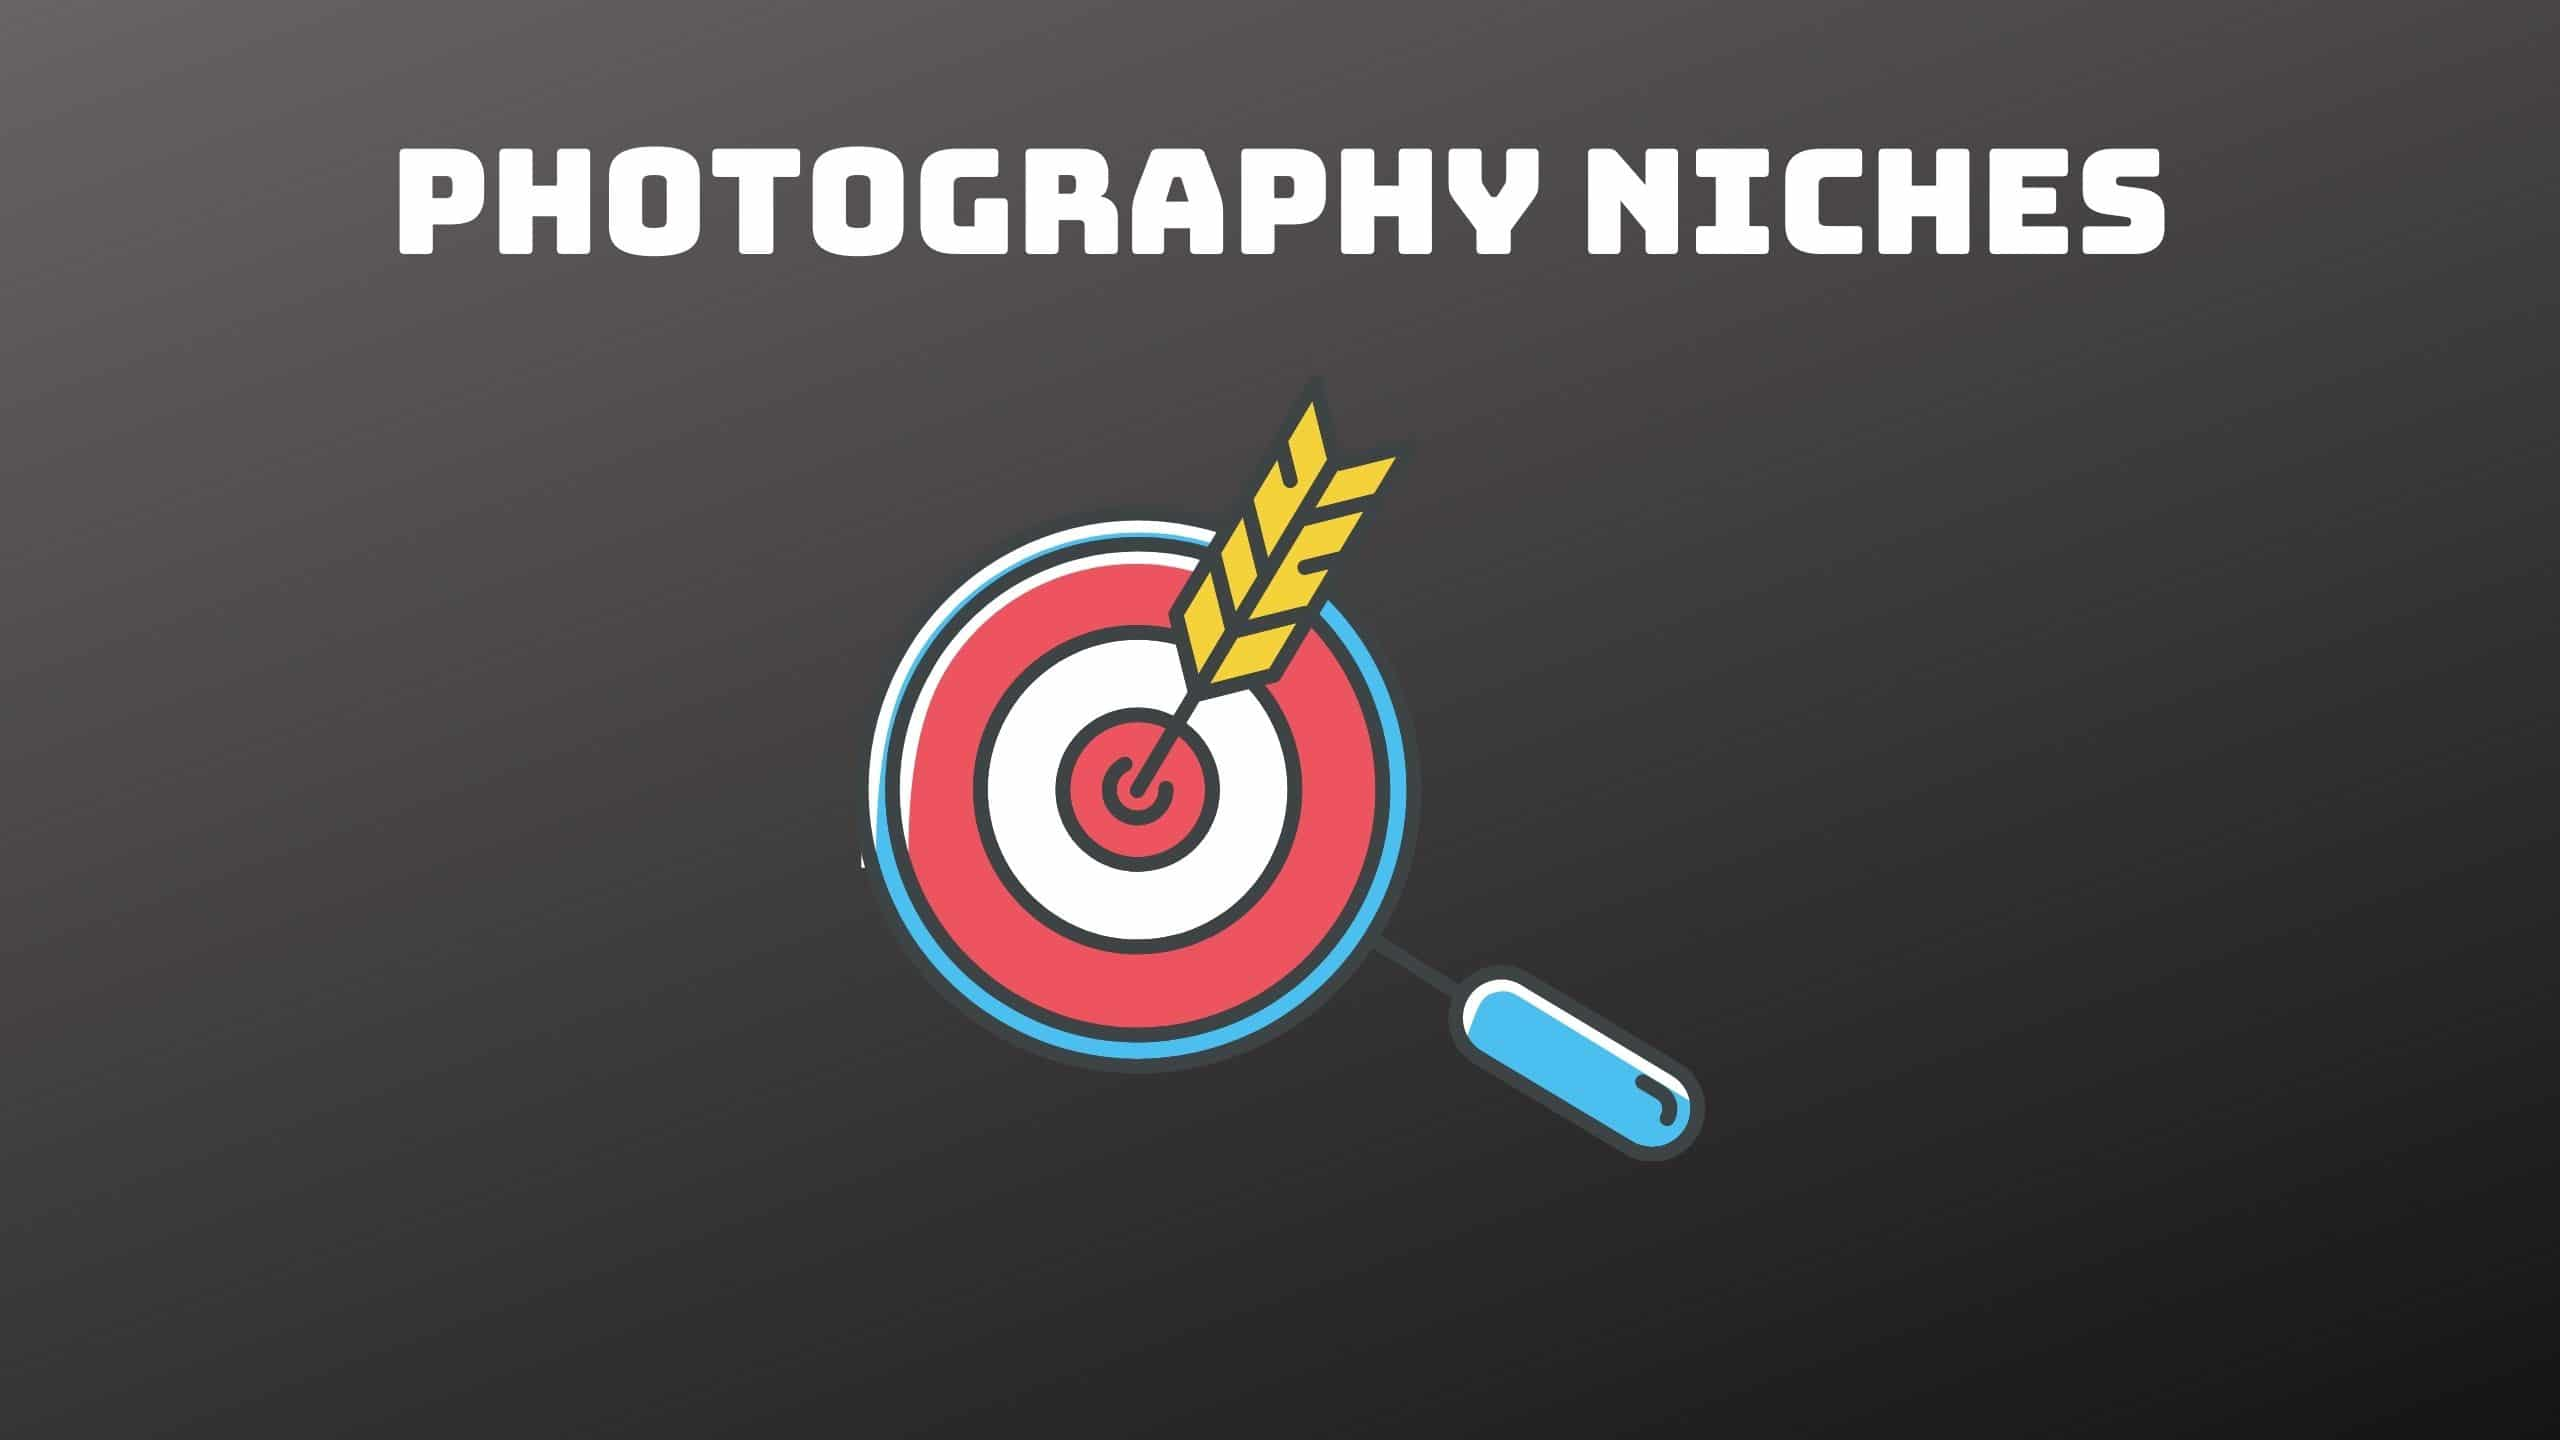 types of Photography Niches